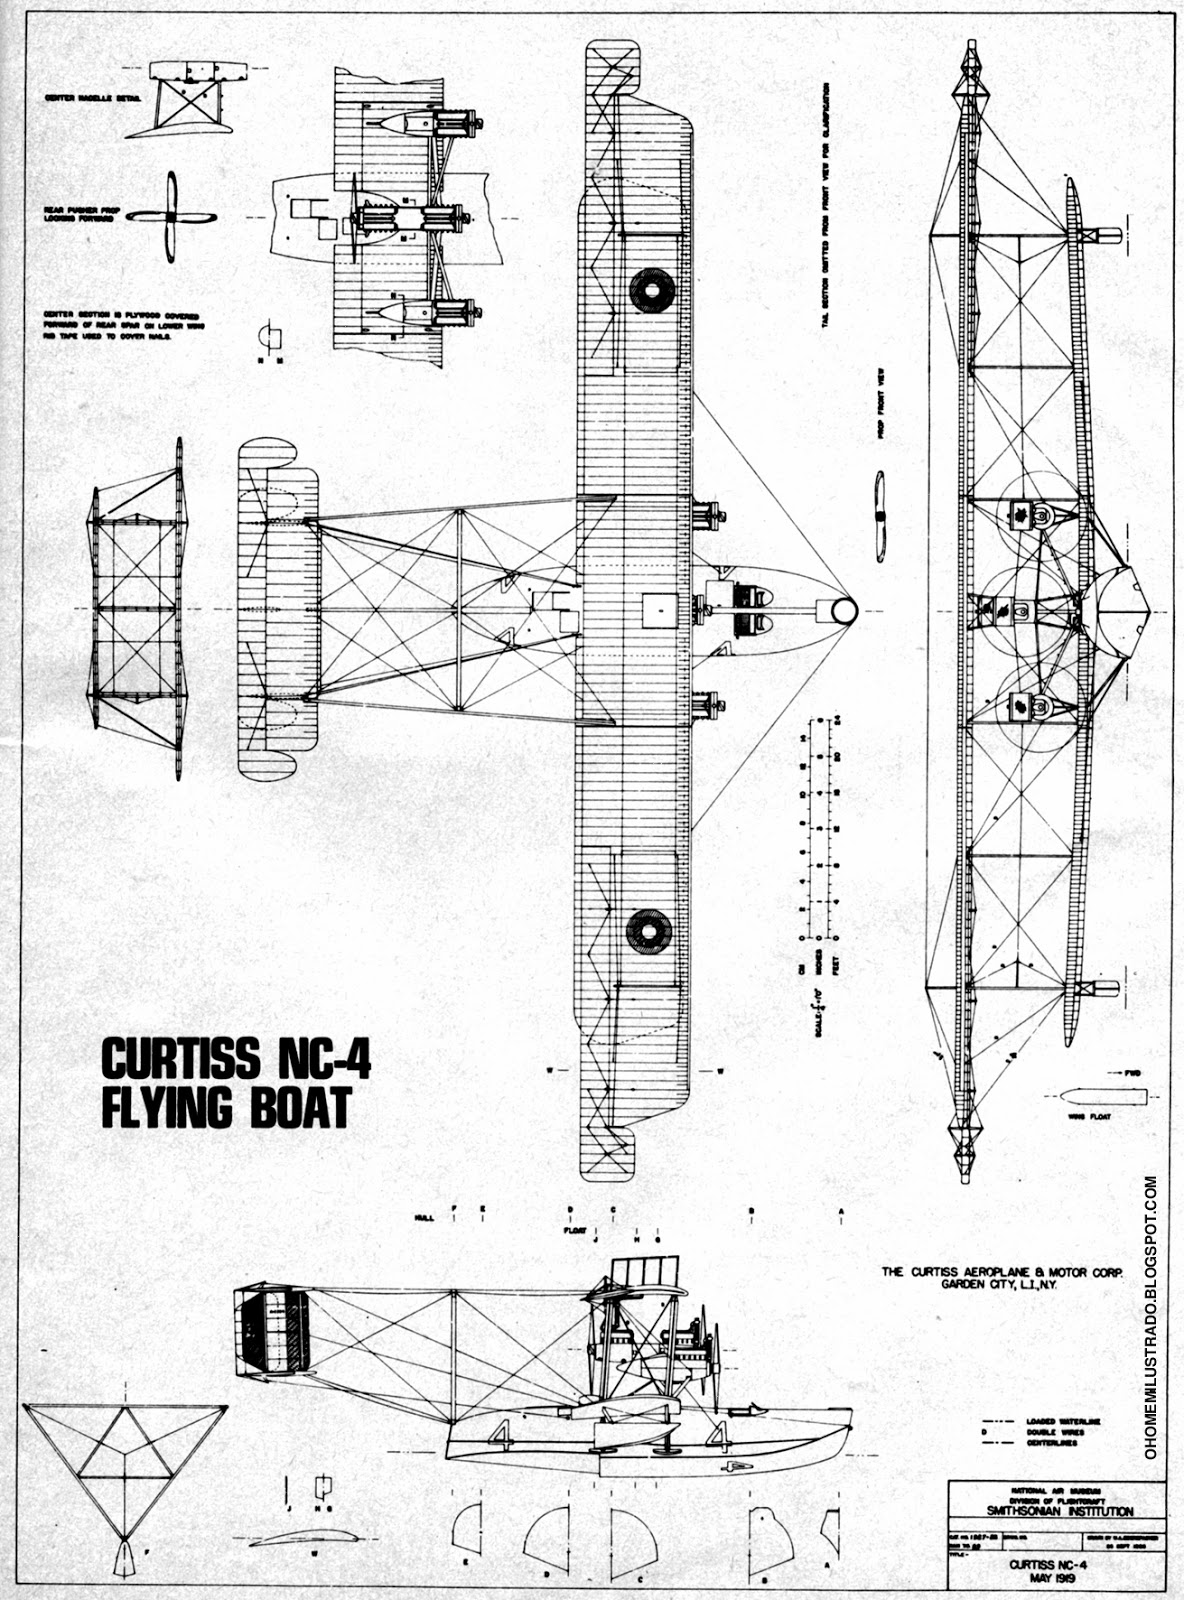 Curtiss NC-4 blueprint